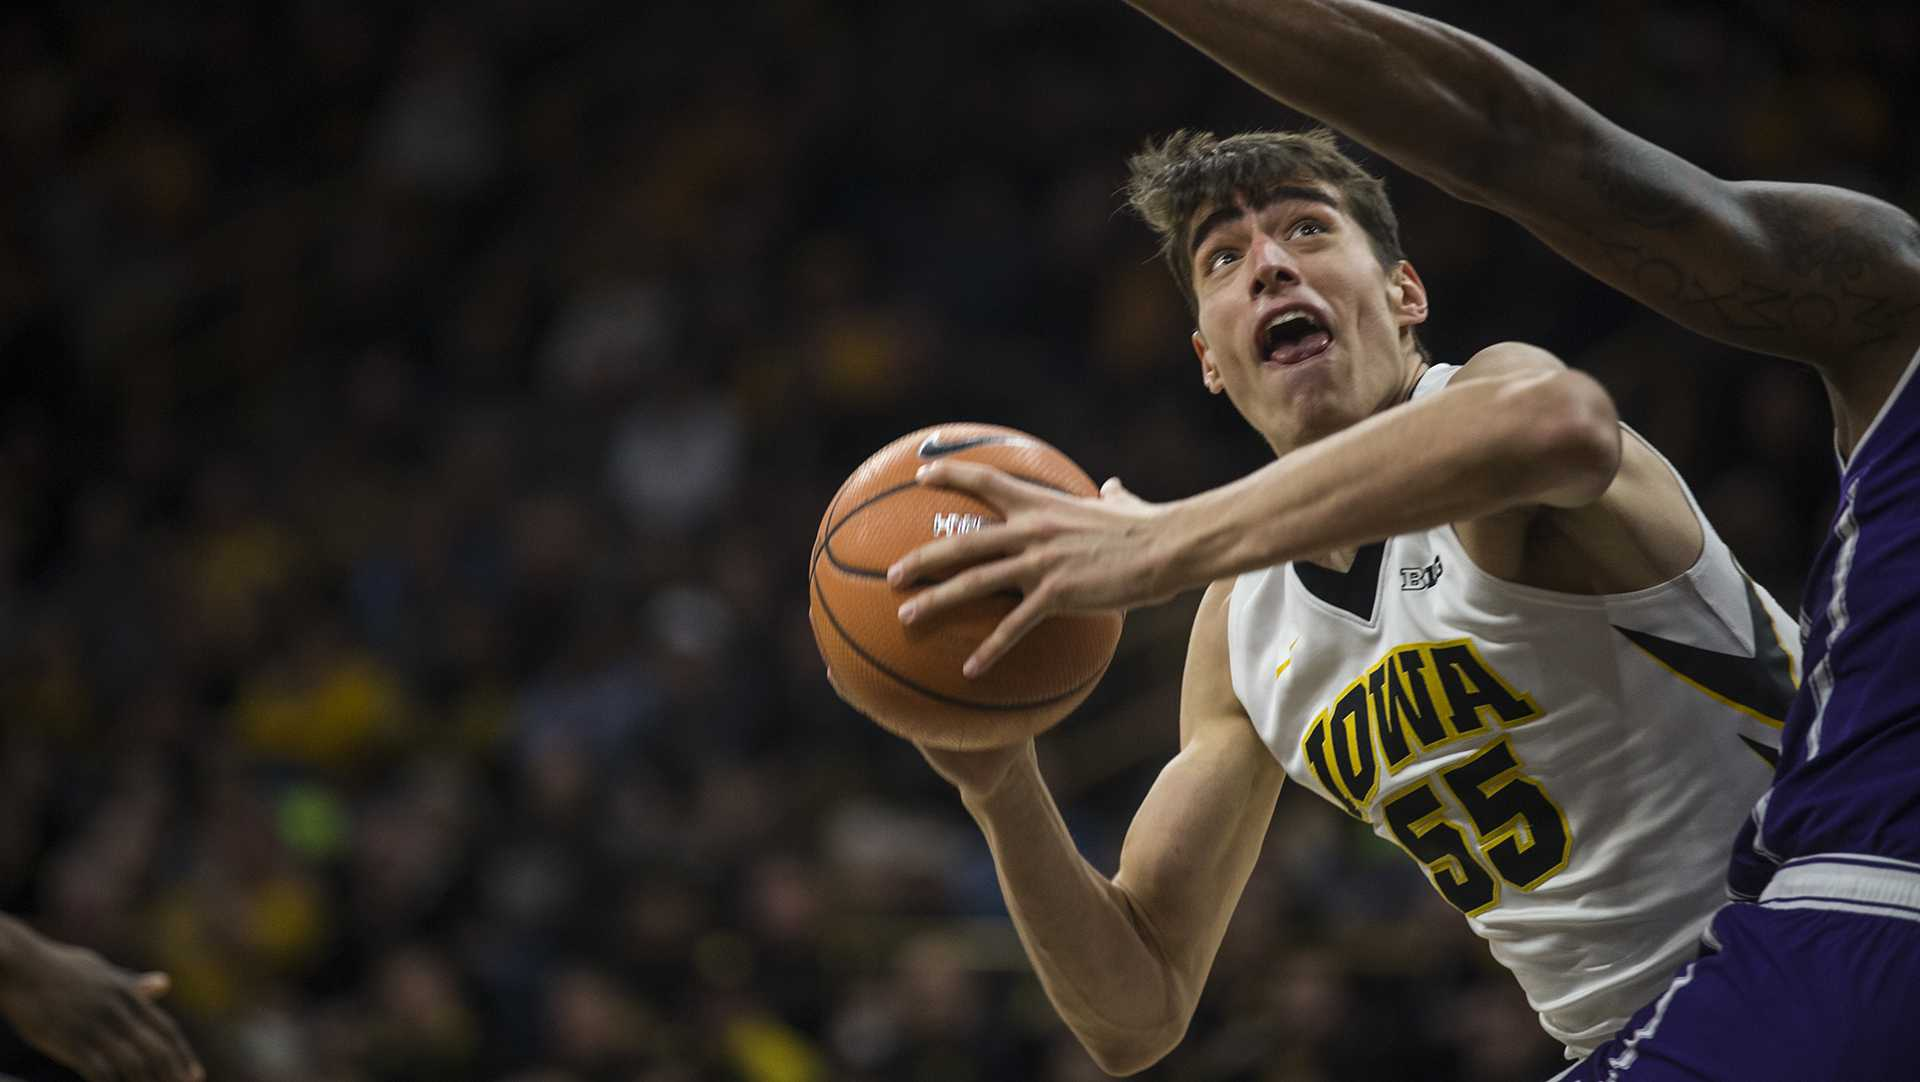 Iowa forward Luka Garza (55) looks for an open shot against a Northwester defender during the Senior Day men's basketball game between Iowa and Northwestern at Carver-Hawkeye Arena on Sunday, Feb. 25, 2018. The Hawkeyes defeated the Wildcats 77-70. (Ben Allan Smith/The Daily Iowan)